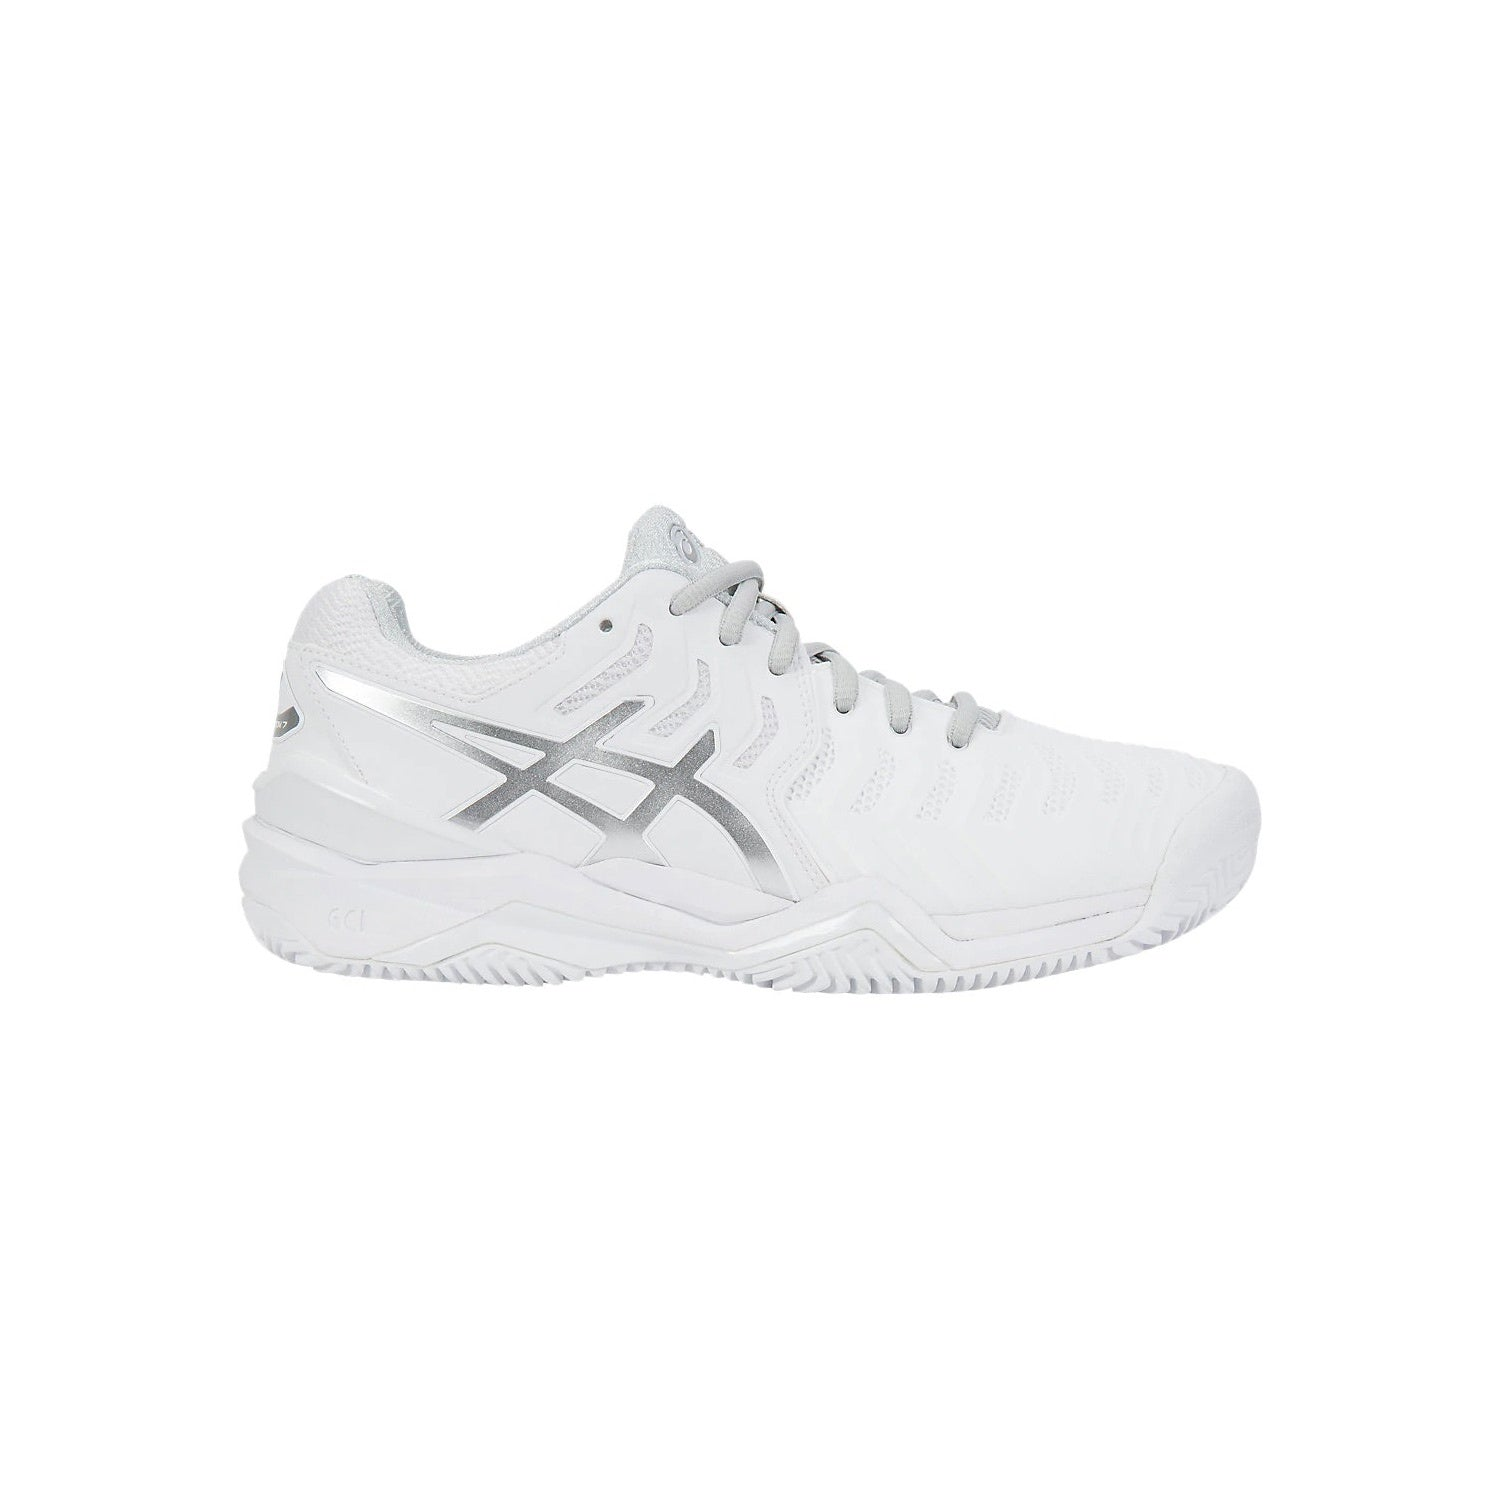 Asics 2019 Women's Gel-Resolution 7 Clay